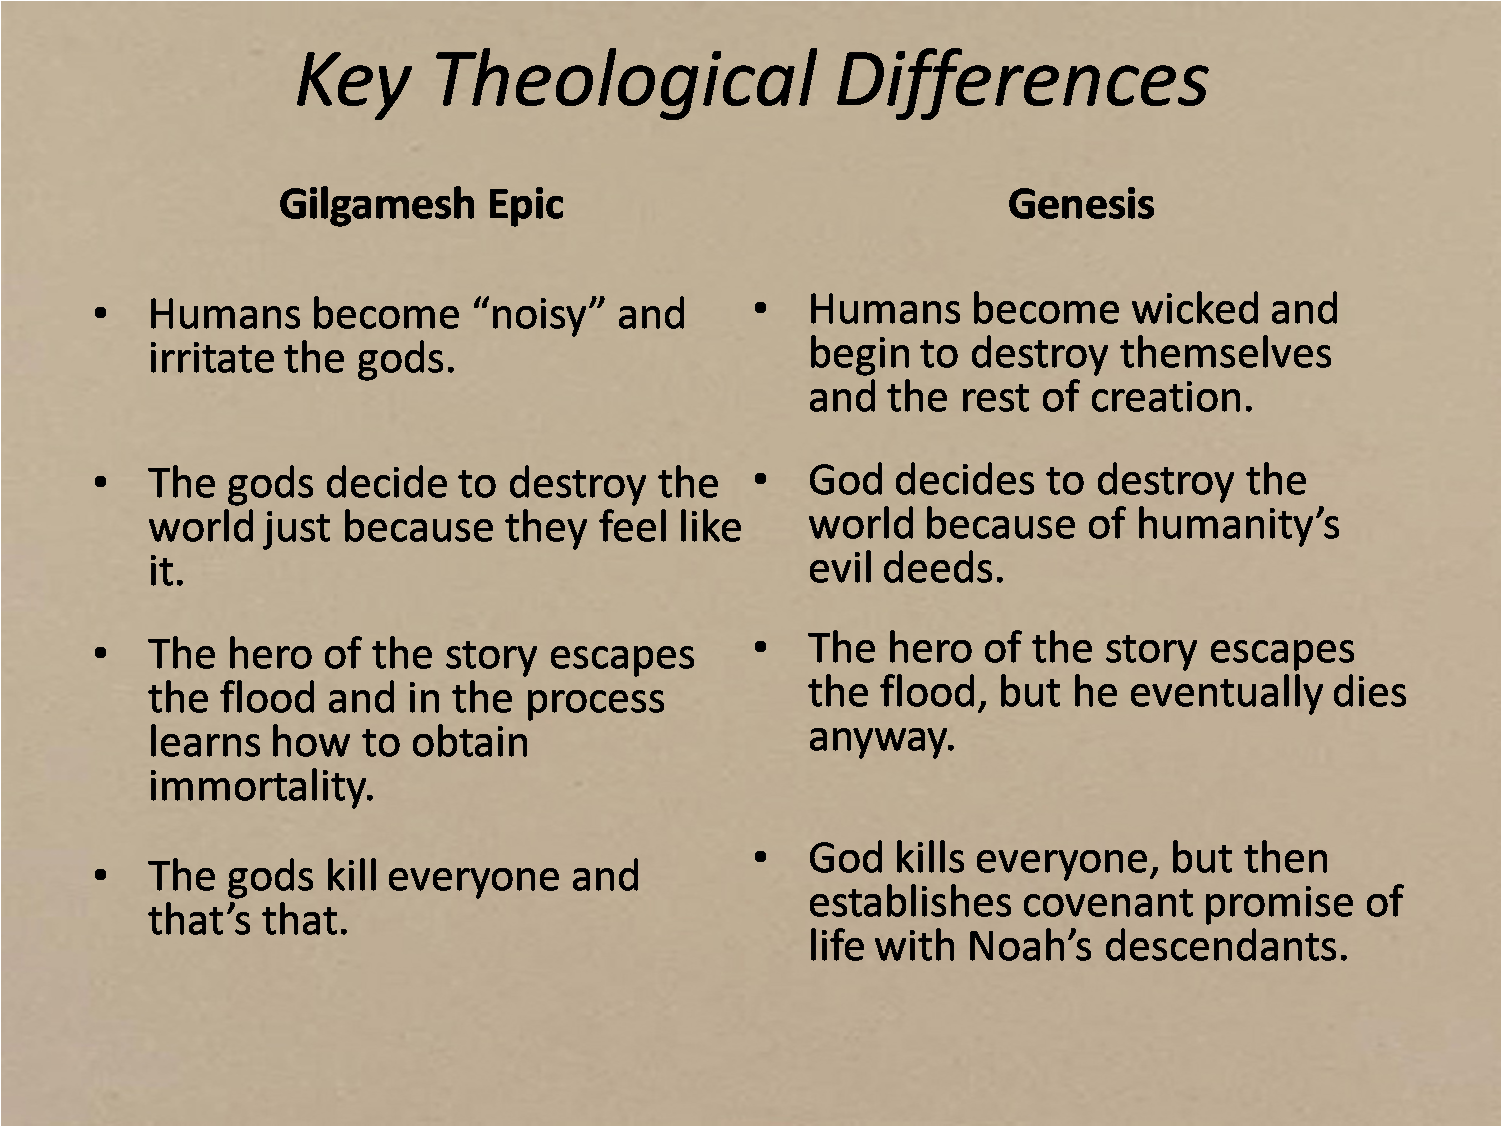 A comparison of gilgamesh and genesis